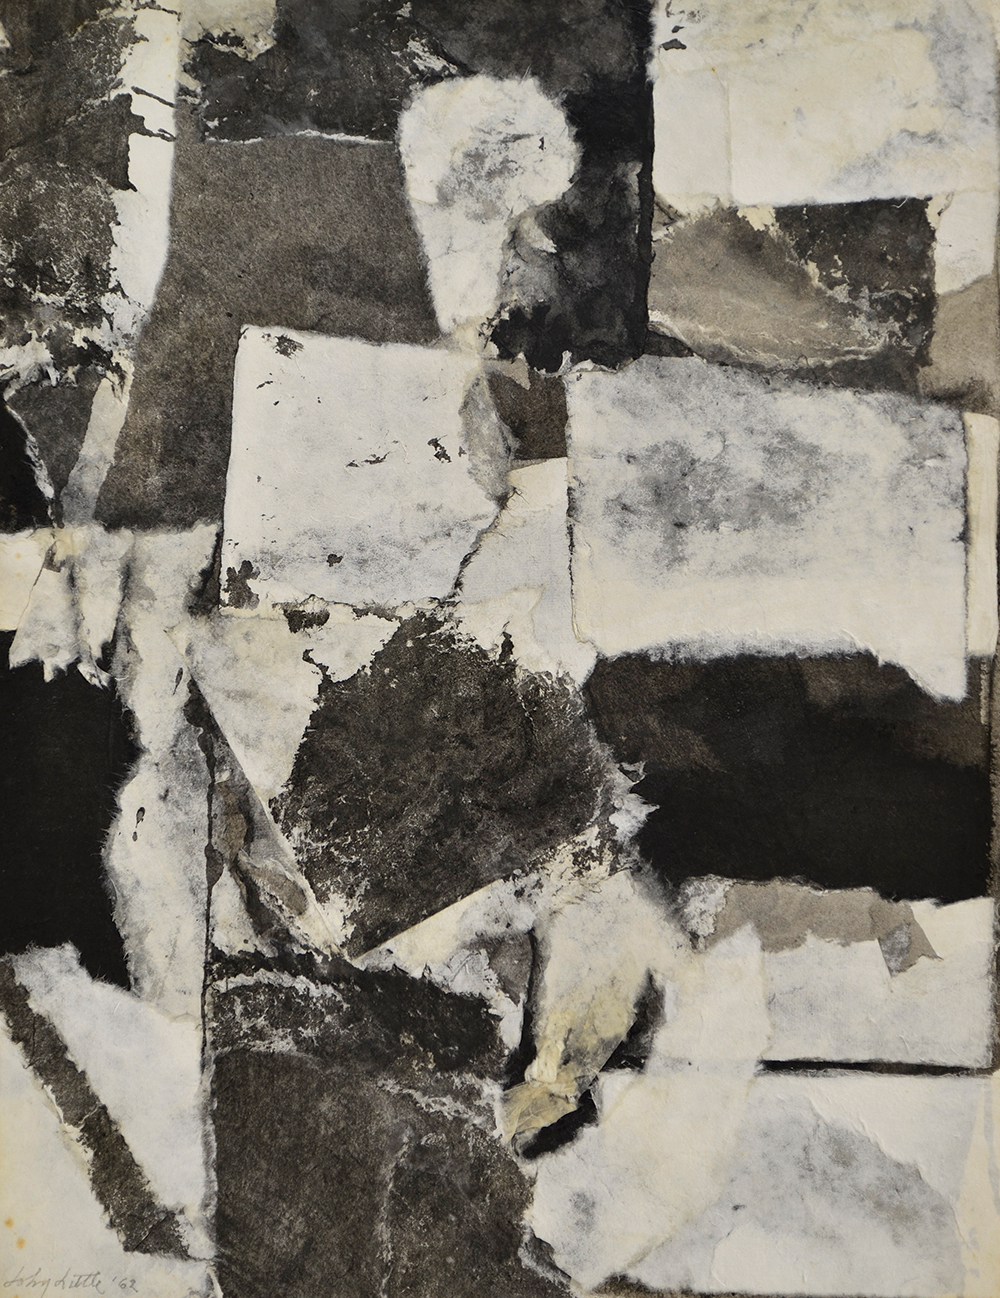 Untitled,   Collage with Douglas Howell paper and ink, 1962, 26 1/2 x 20 1/2 inches